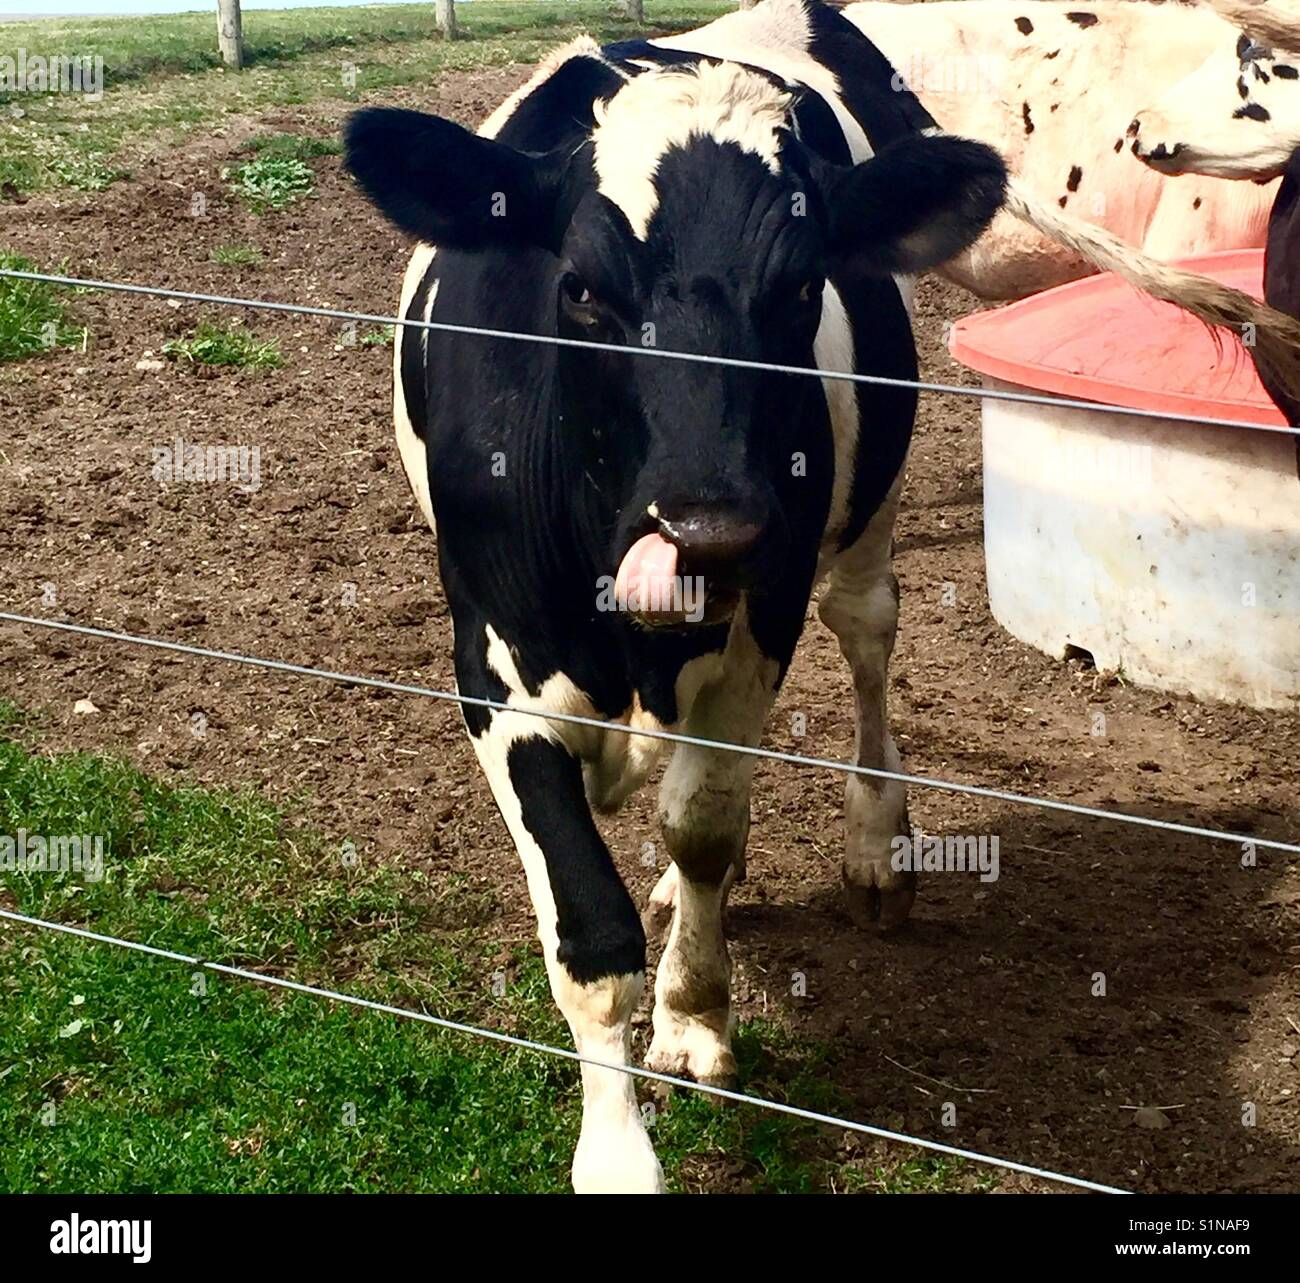 Cow licking lips, 'oops I missed a bite', black and white cow sticks out tongue - Stock Image